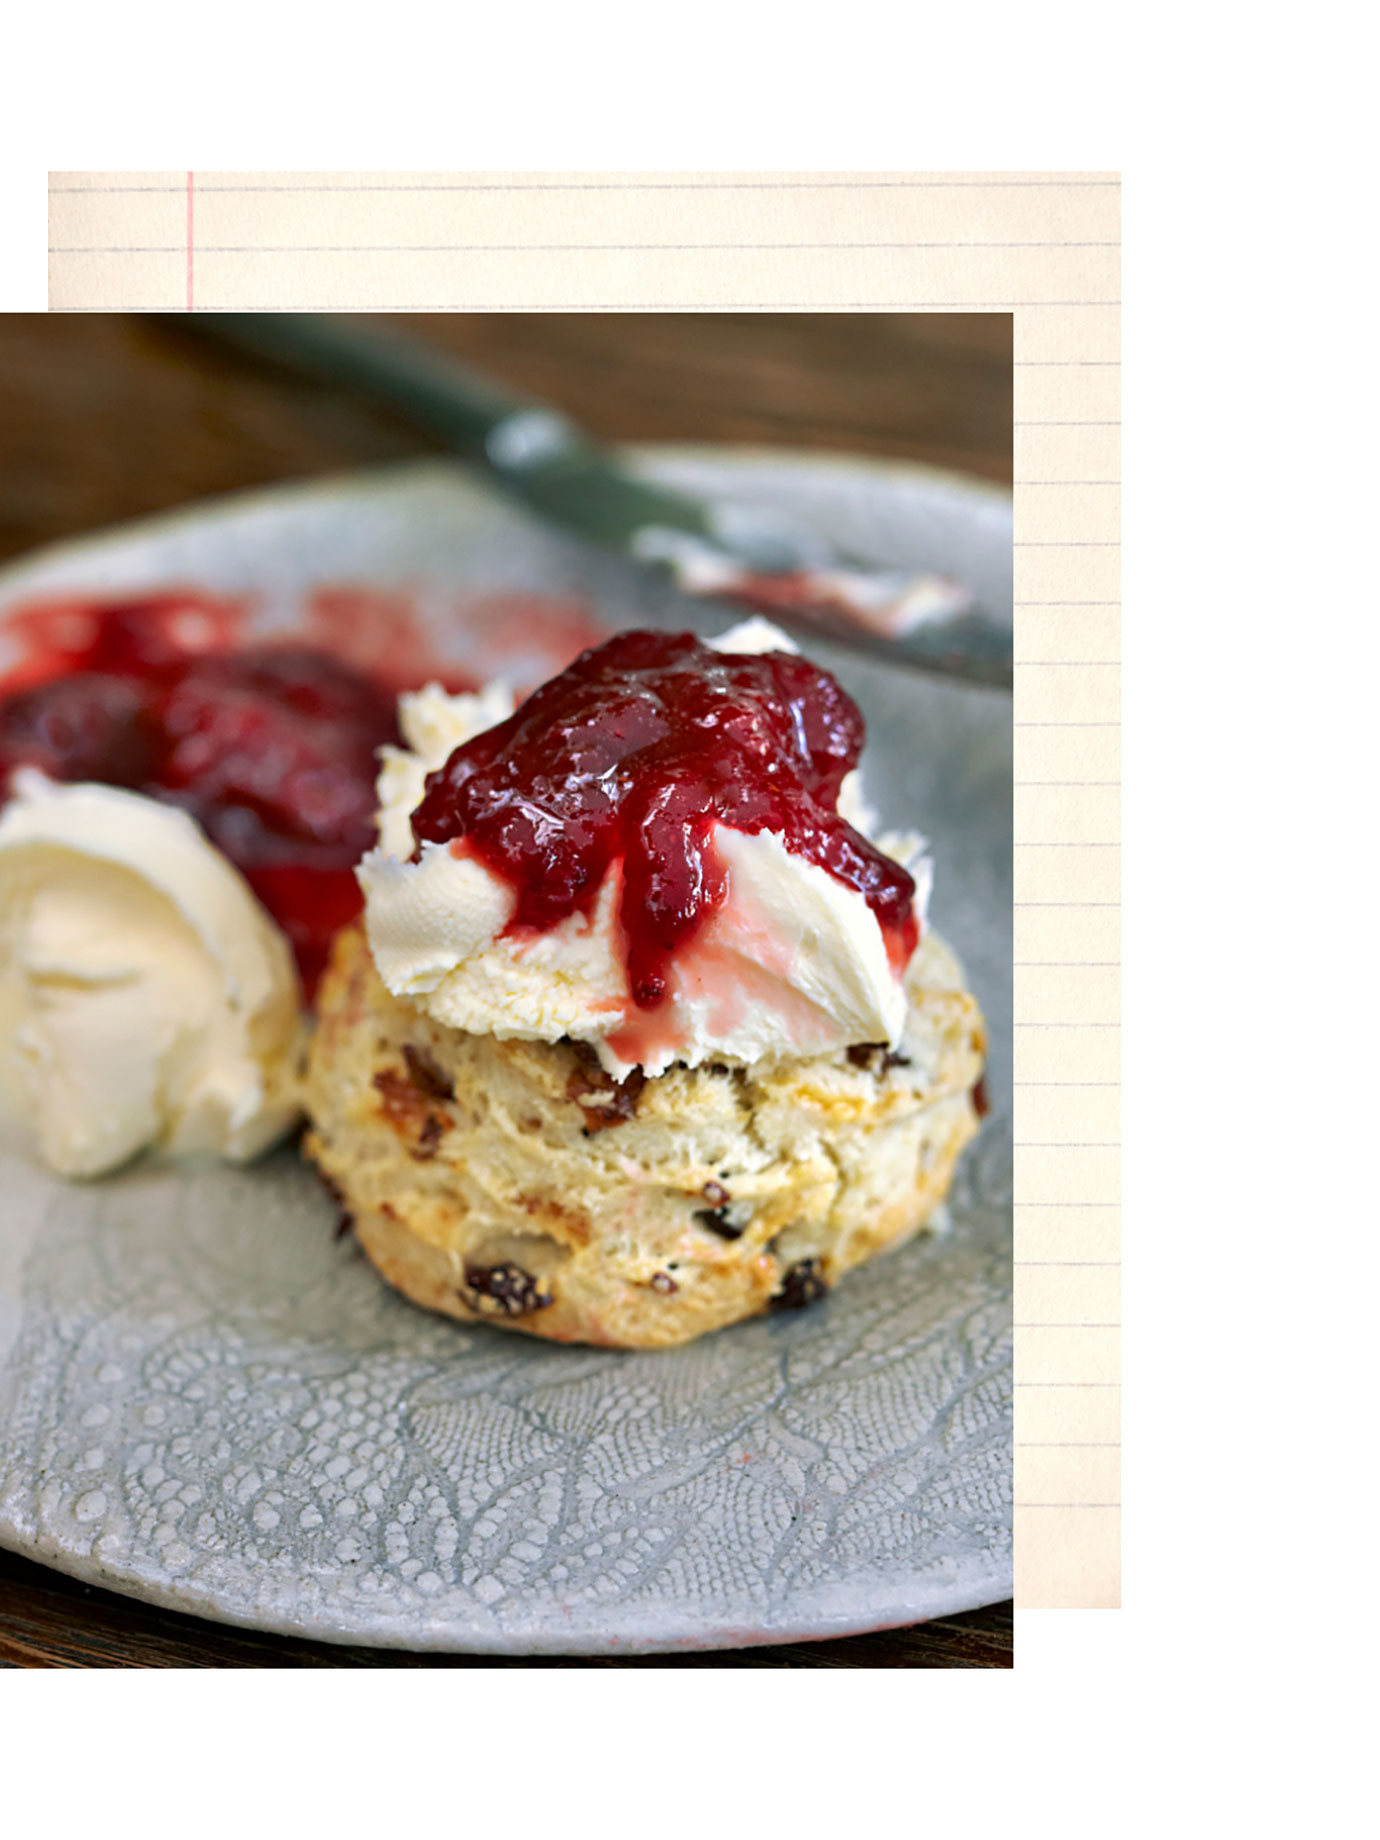 A scone with jam on it.